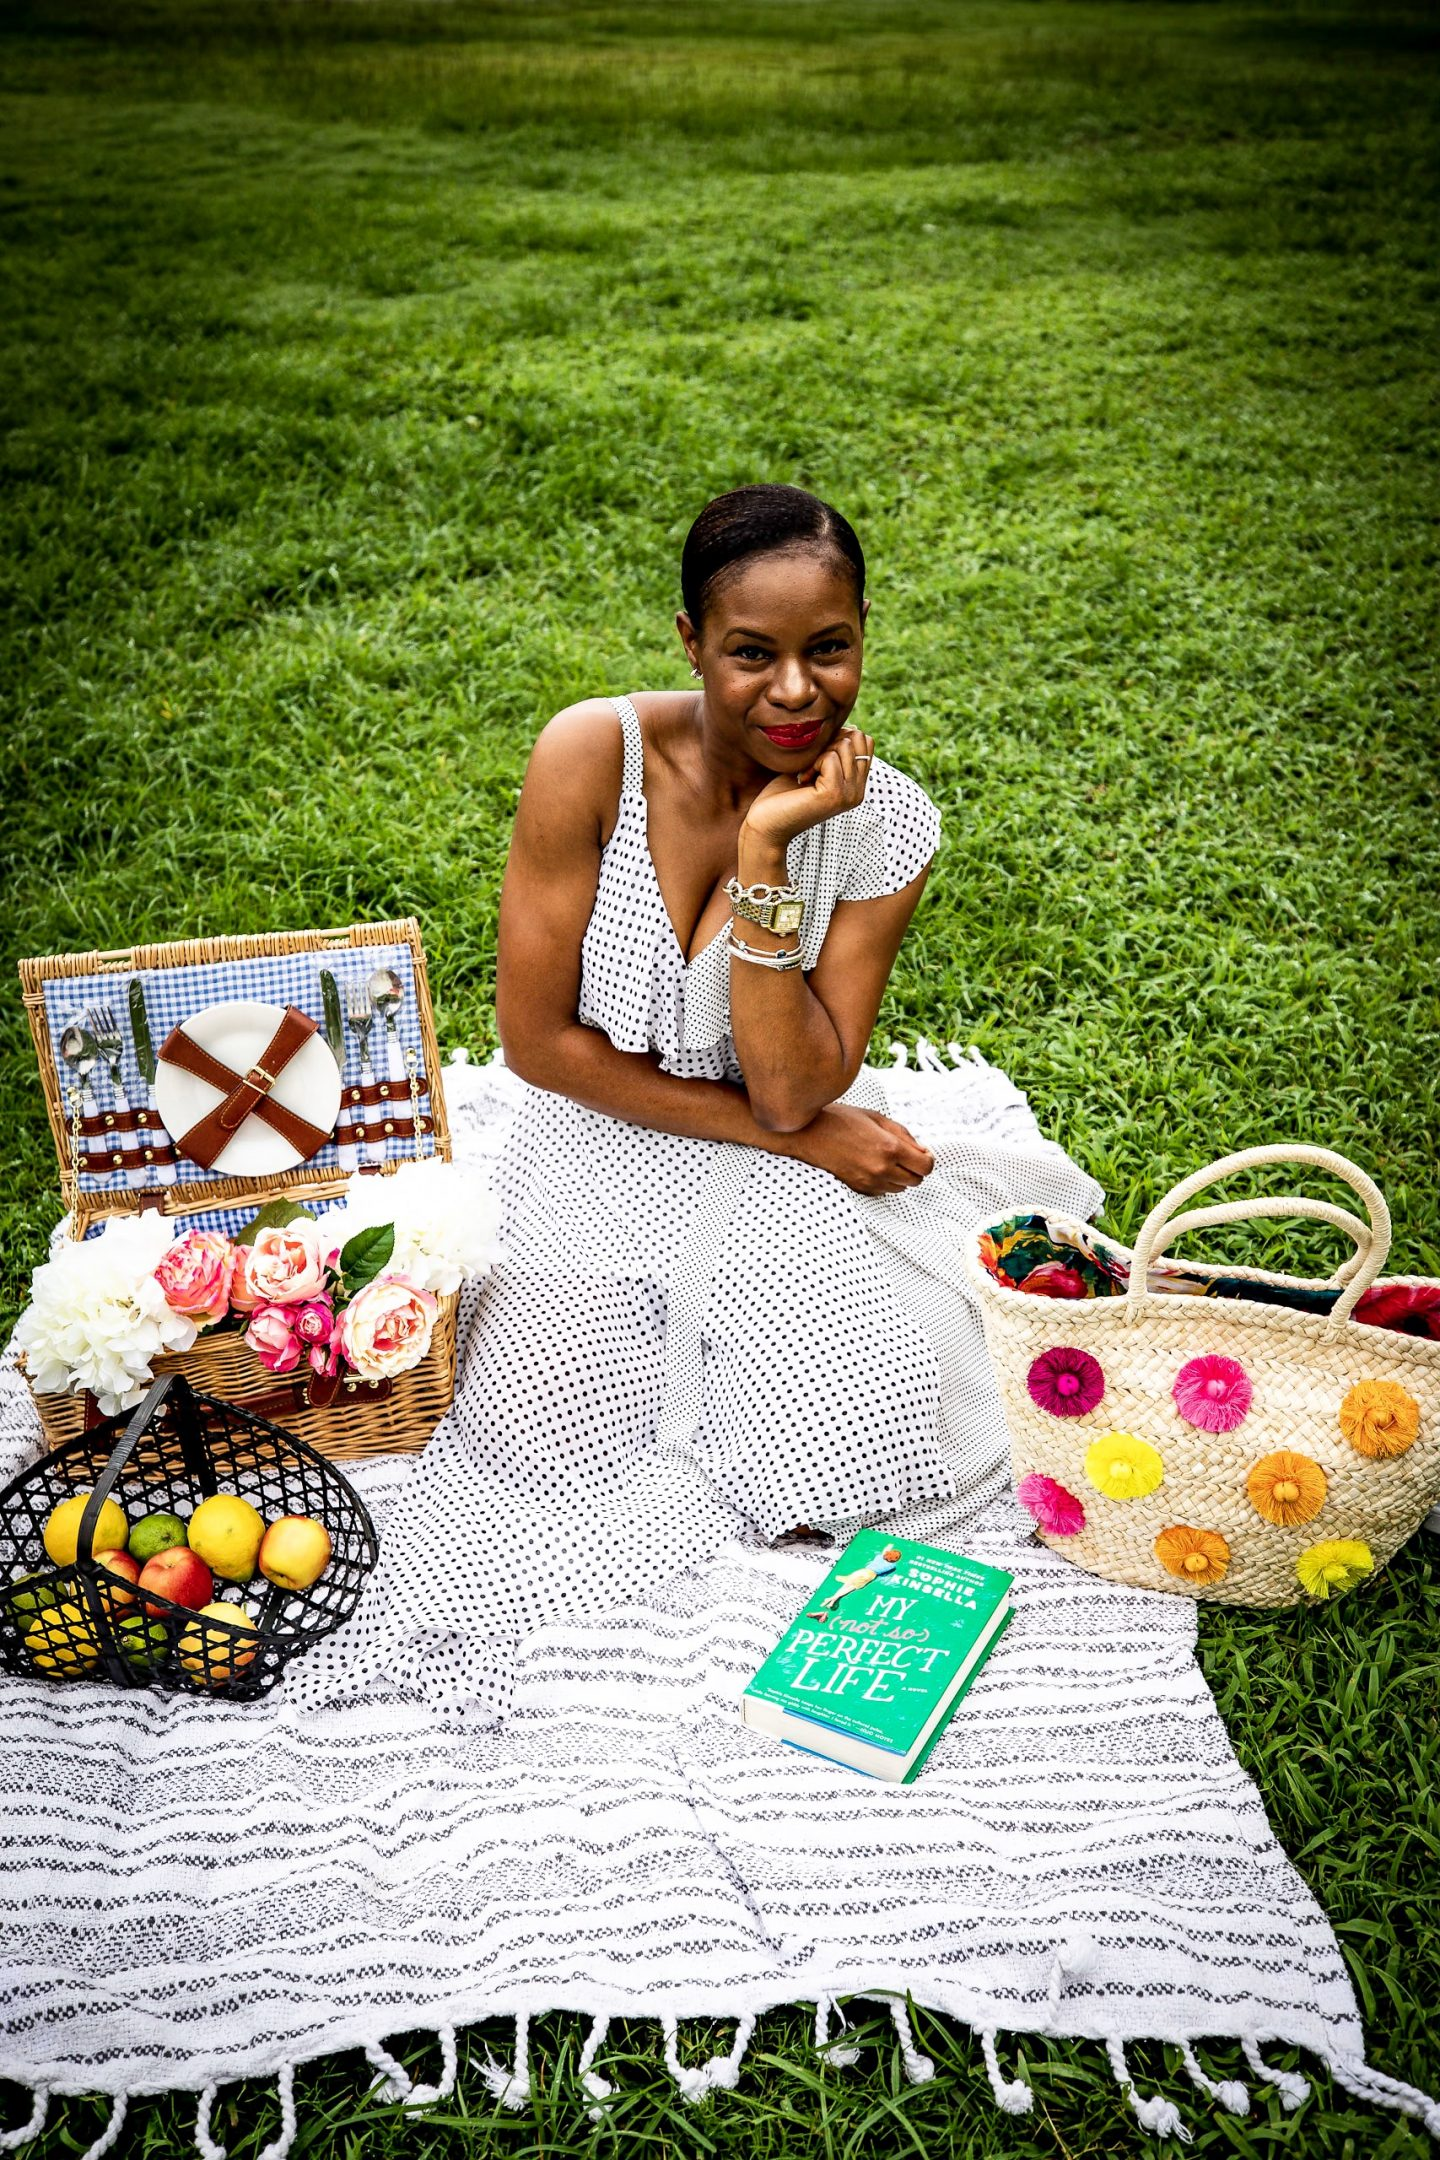 Atlanta fashion and lifestyle blogger Monica Awe of Awed By Monica wearing a polkadot cold shoulder dress to a picnic.